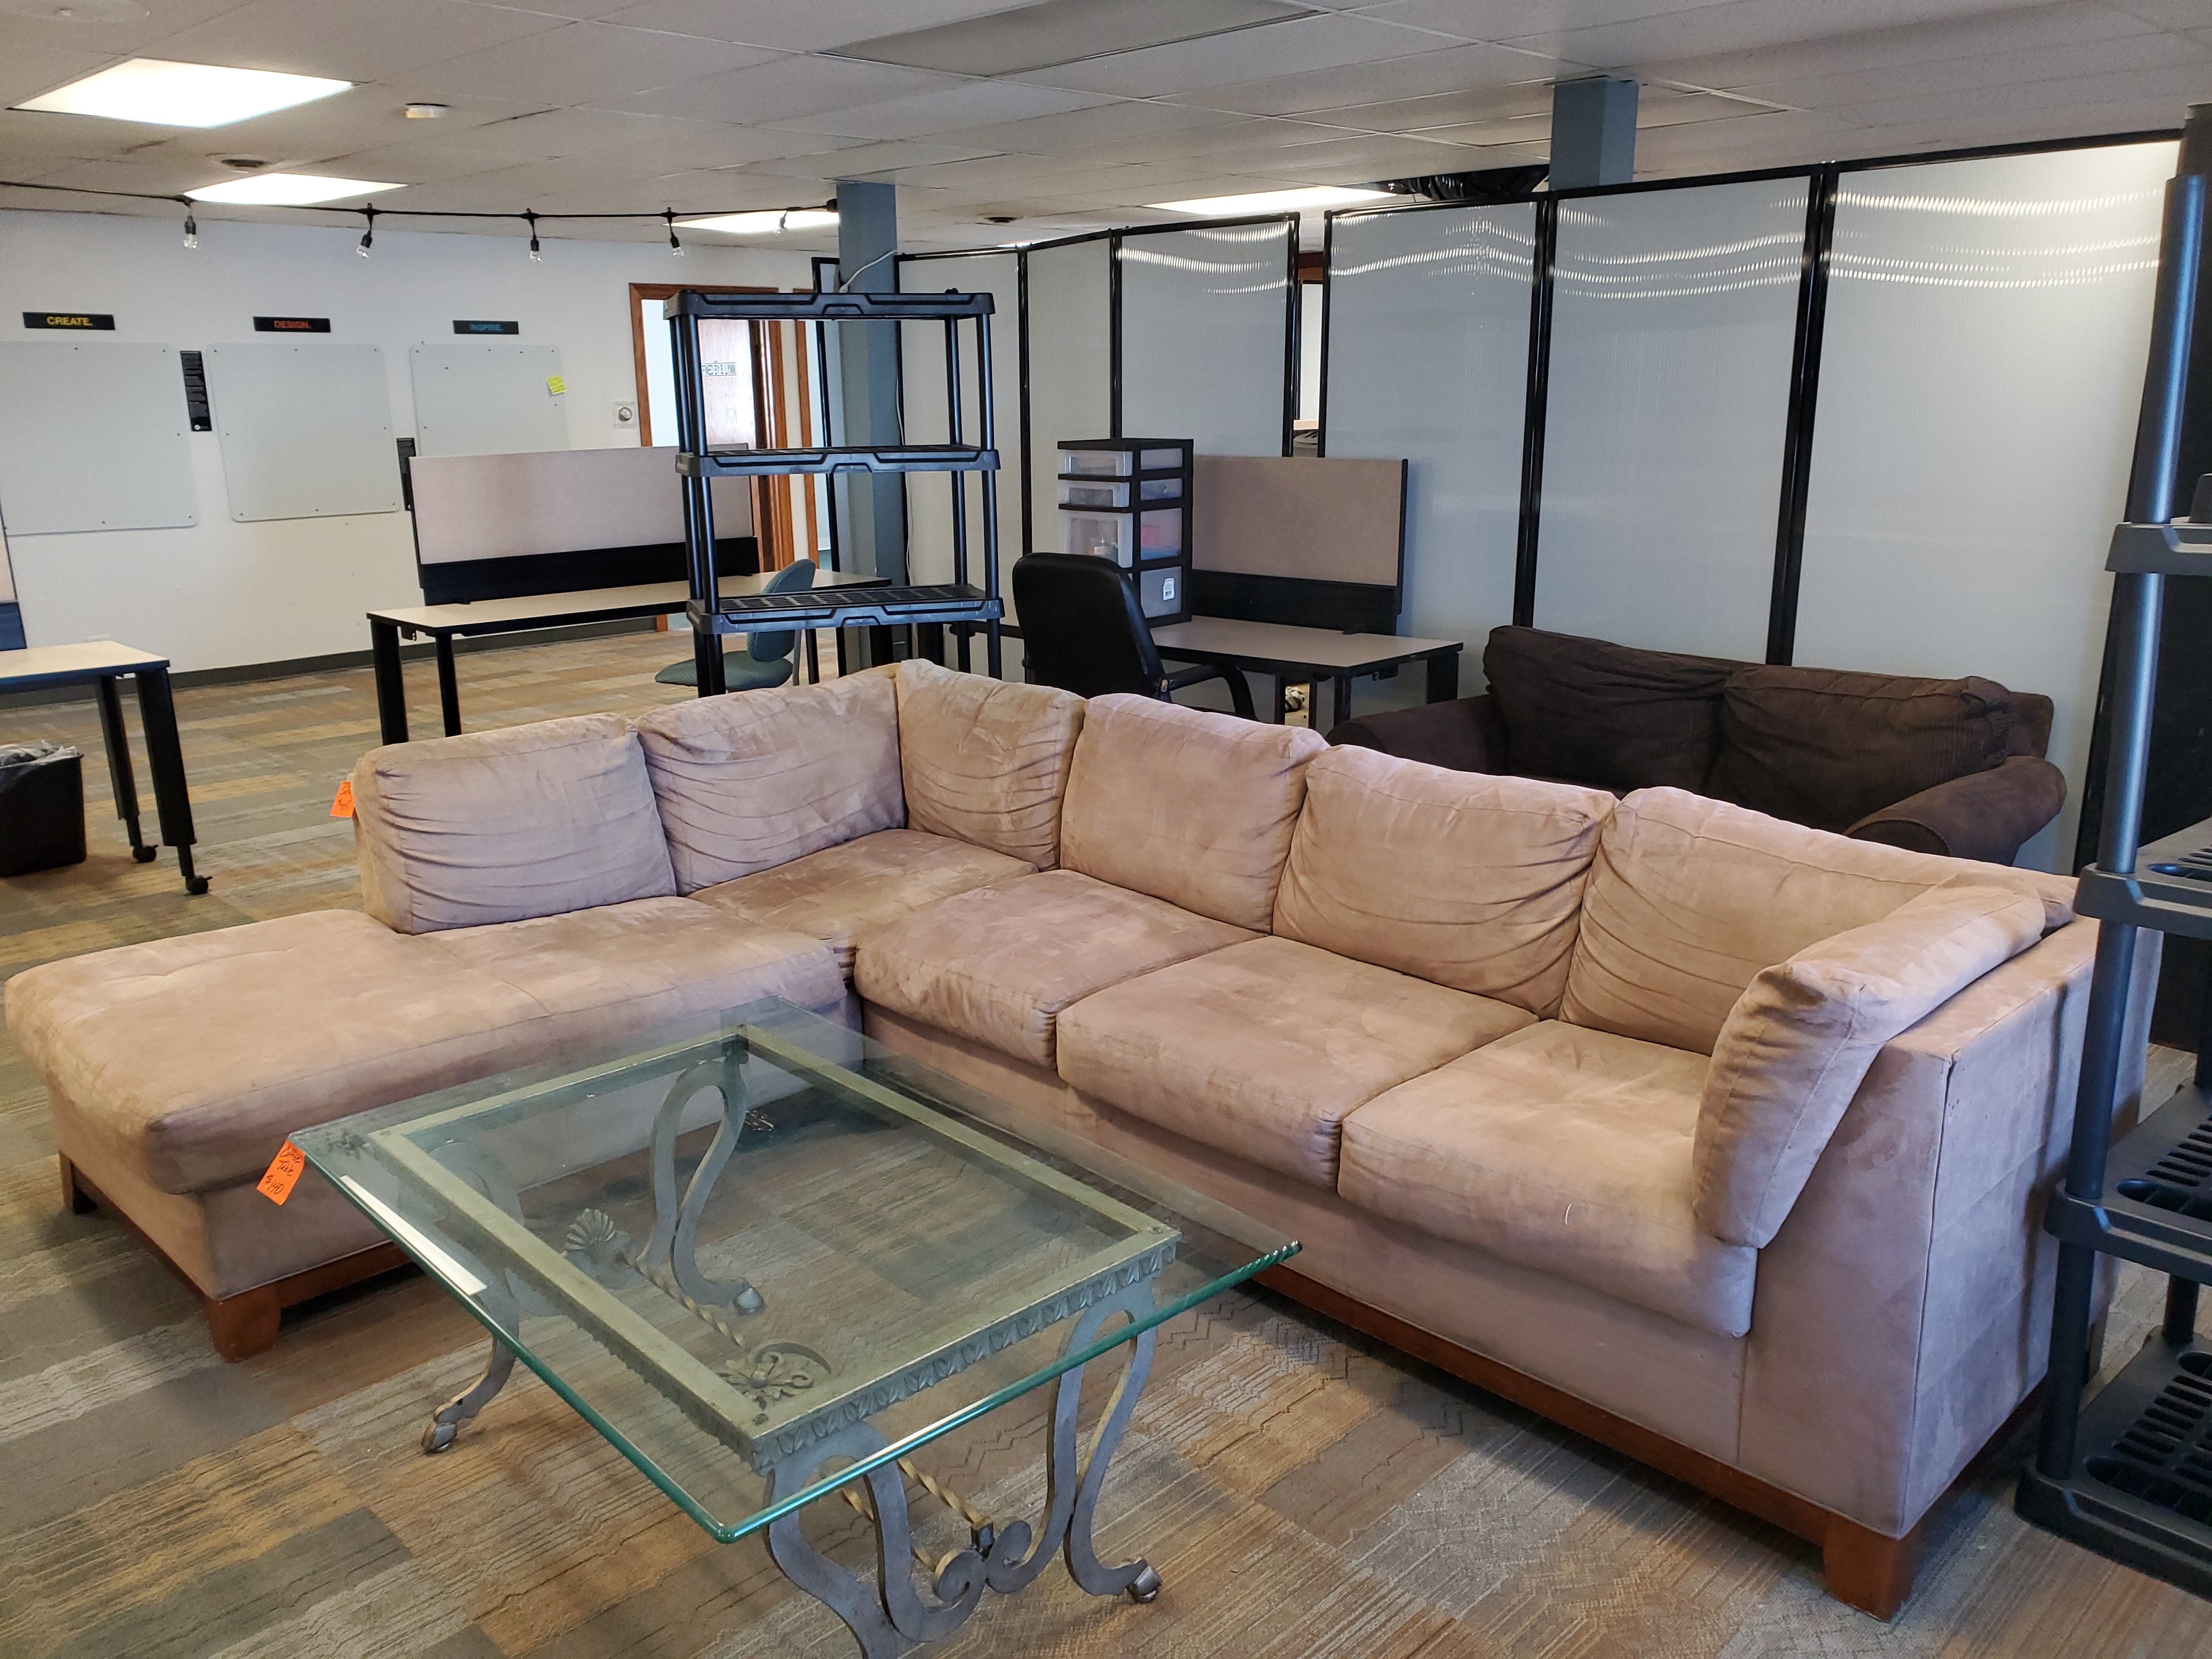 VIEW ITEMS FOR SALE AT 1171 E KEMPER RD